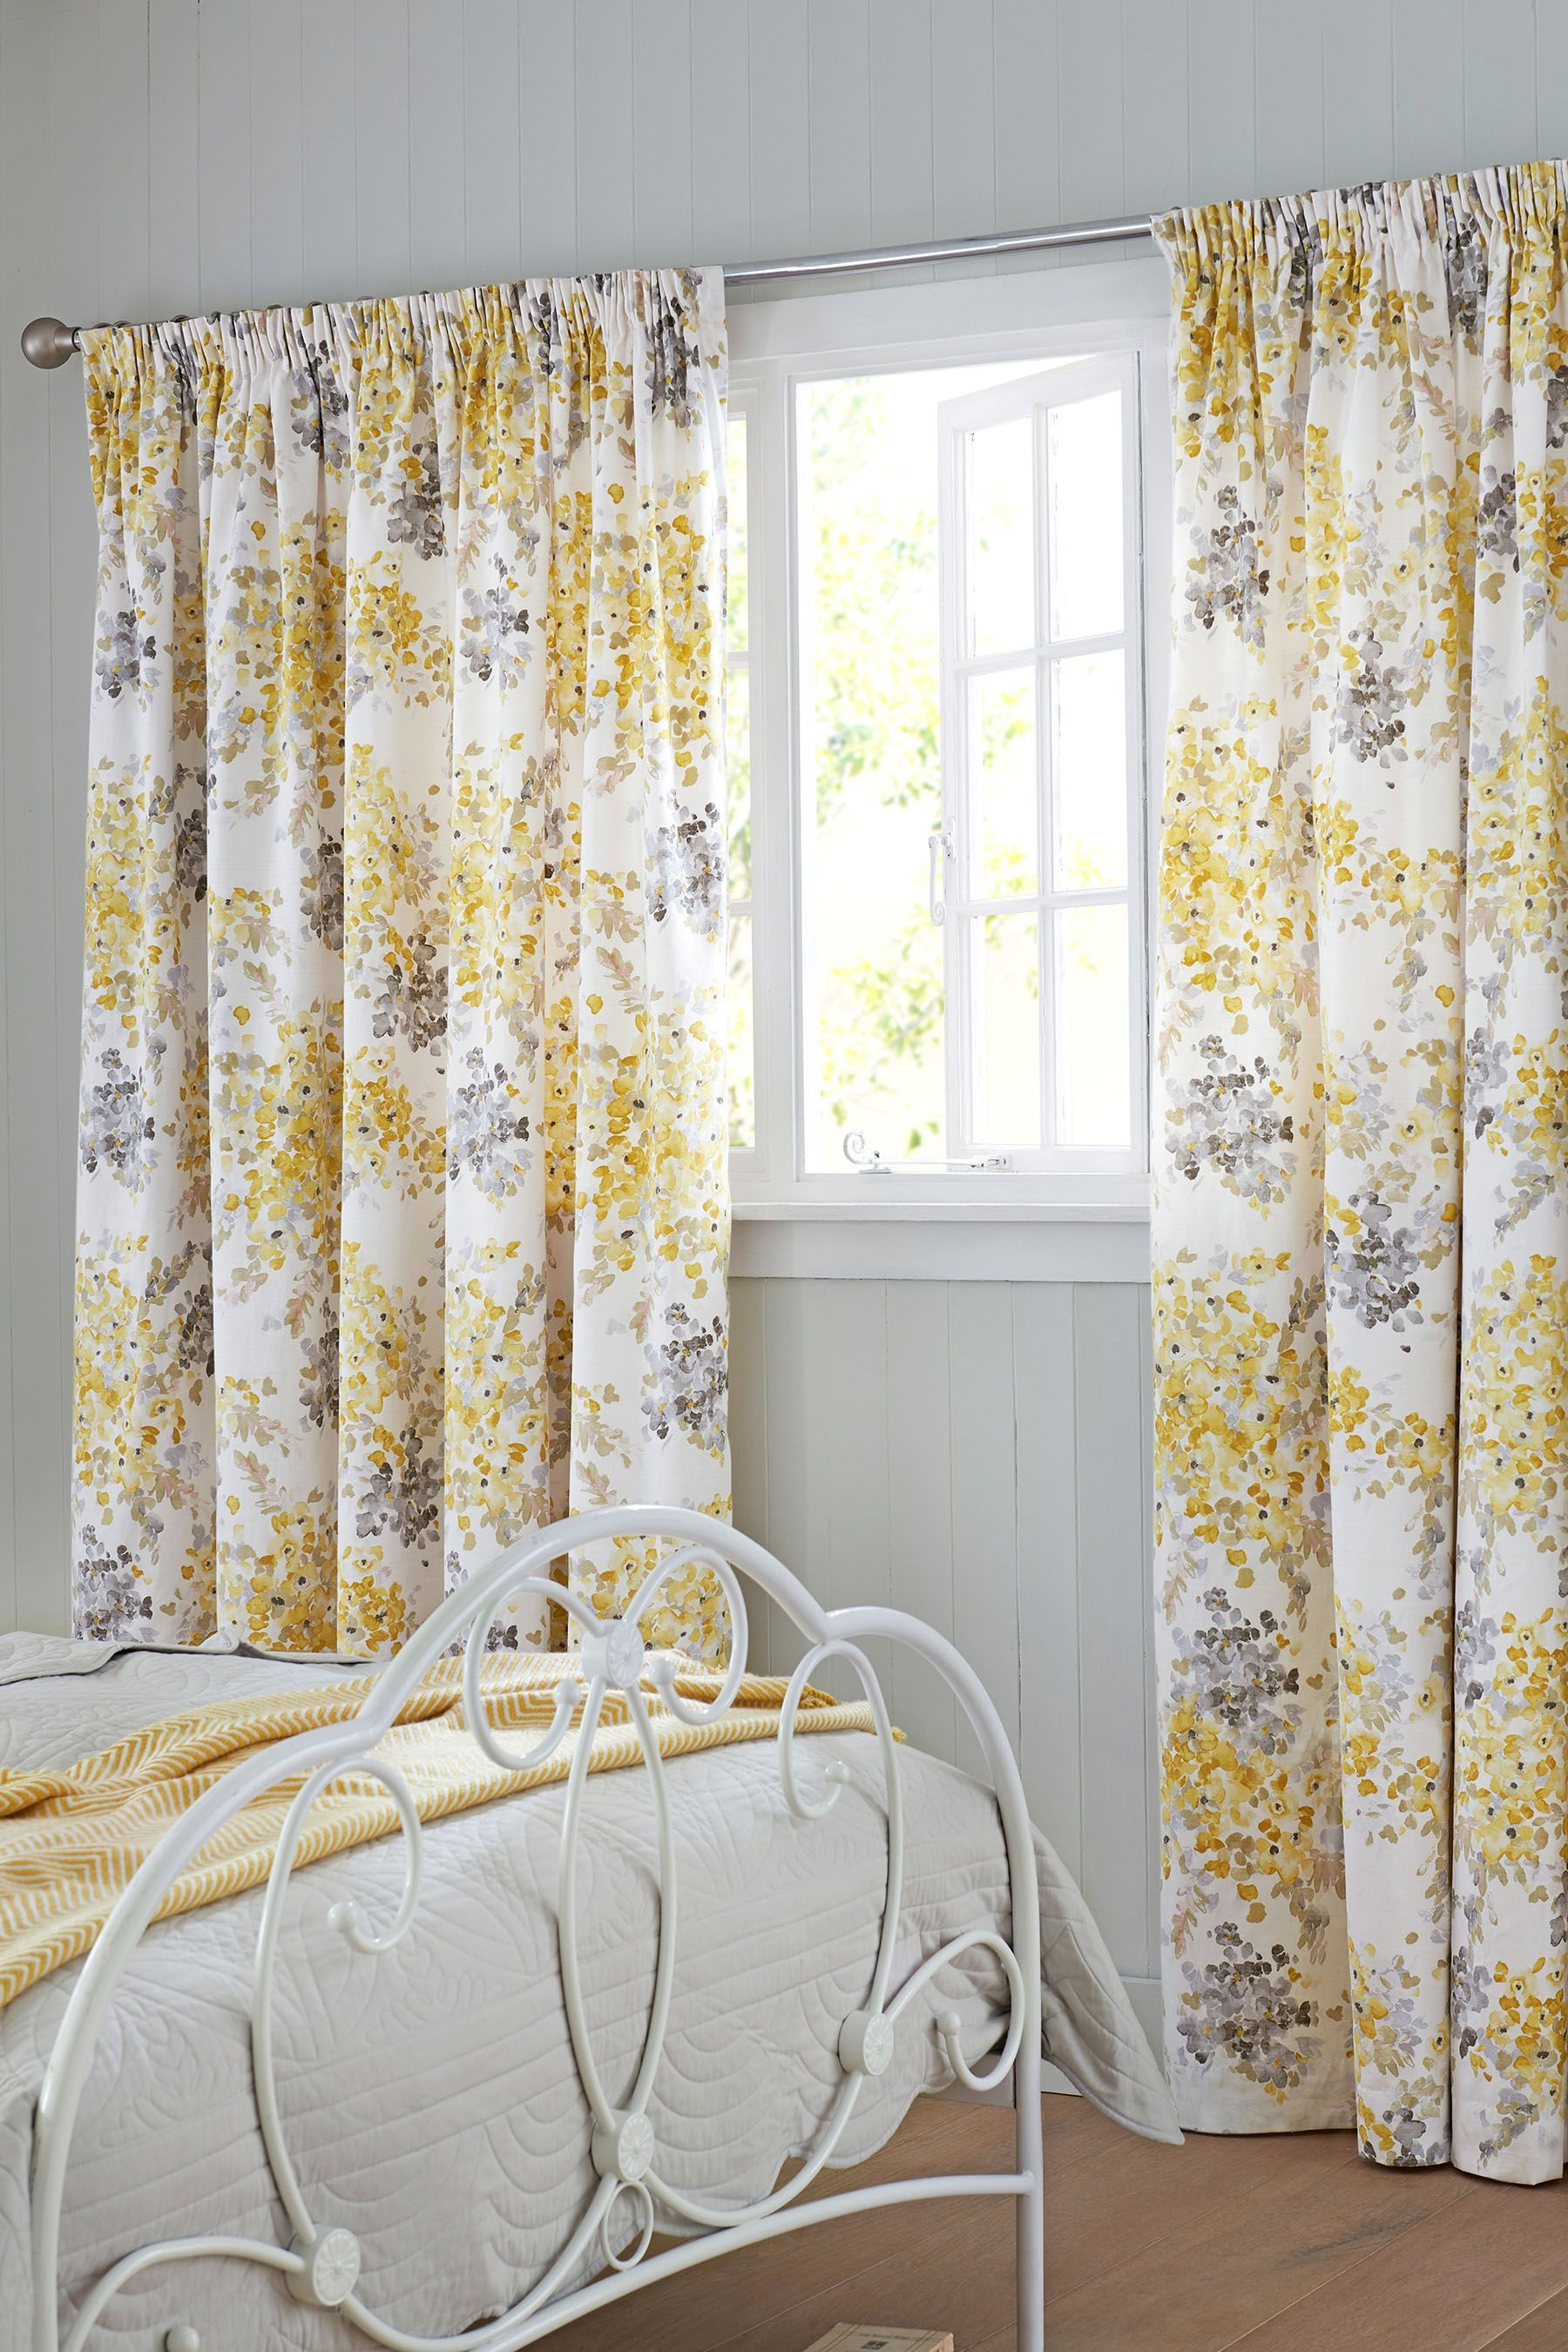 Buy Cotton Sateen Ochre Watercolour Floral Bed Set from